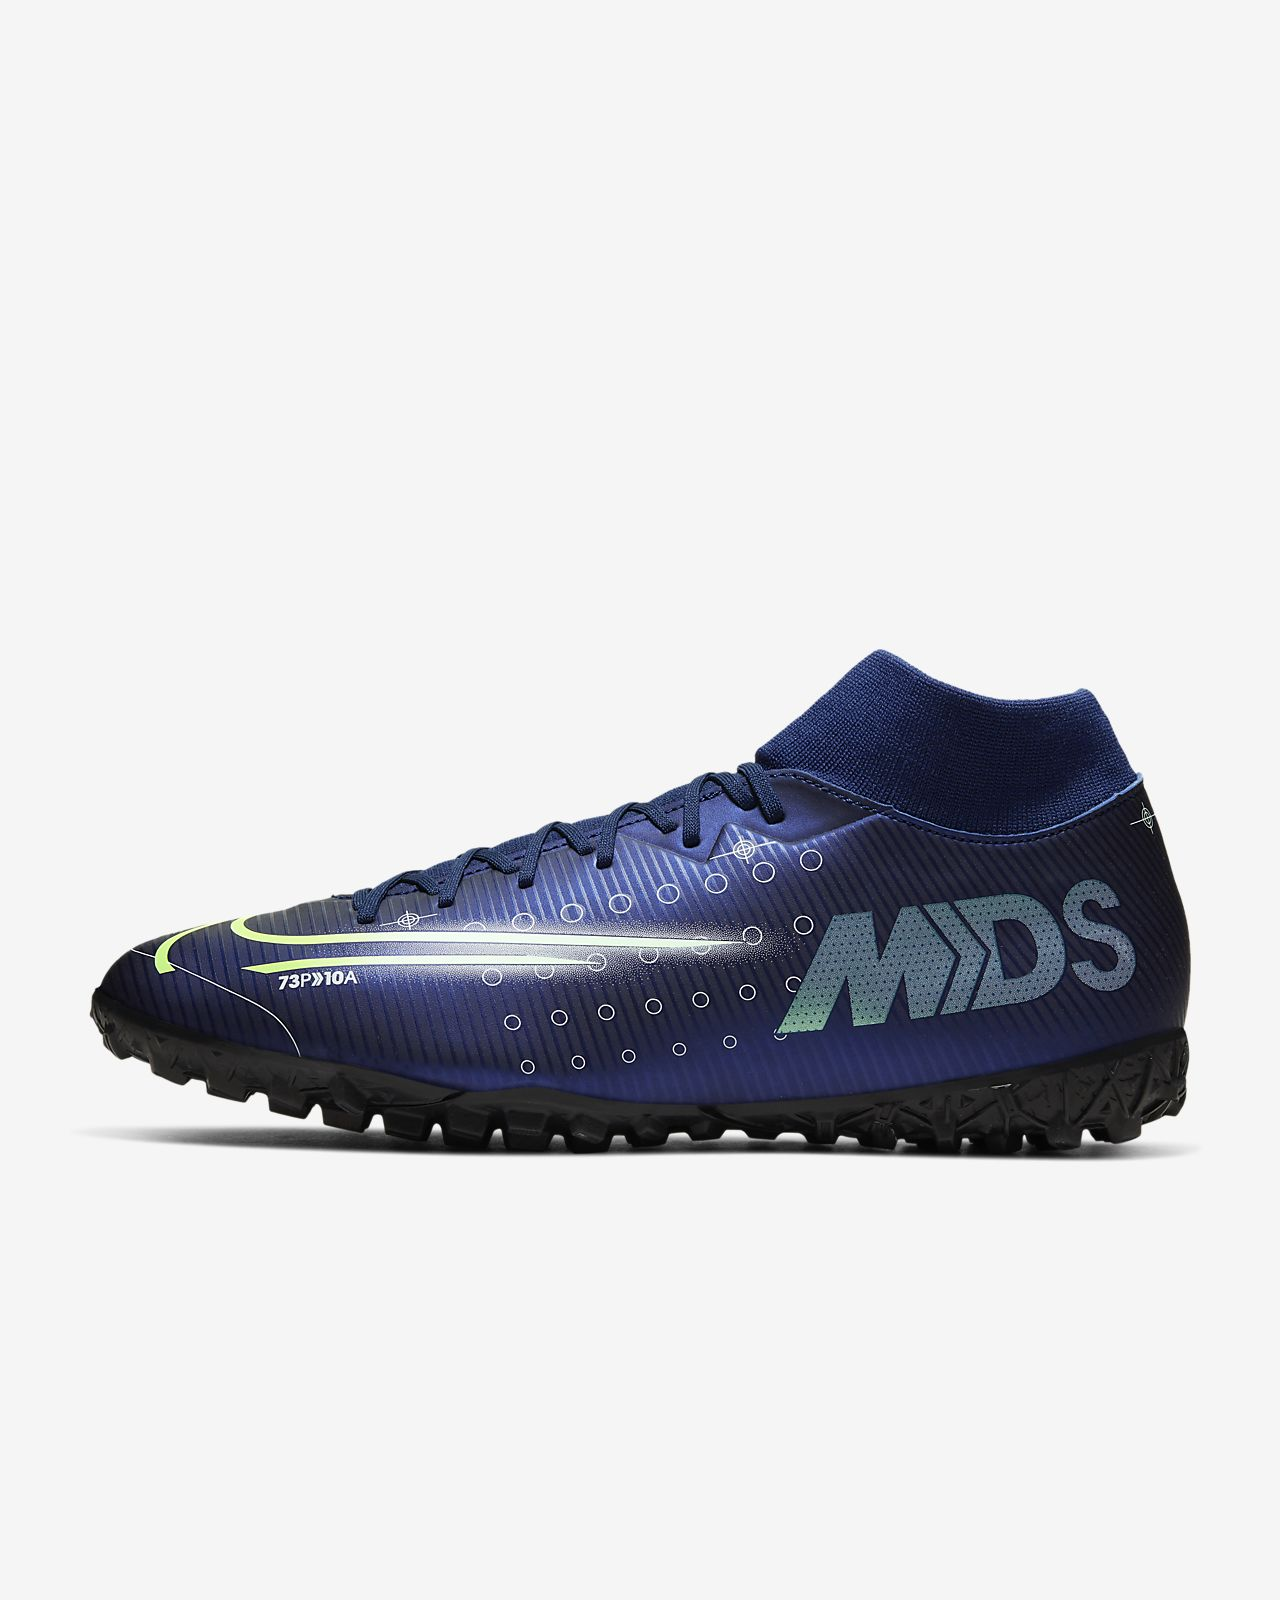 Chaussure de football pour surface synthétique Nike Mercurial Superfly 7 Academy MDS TF